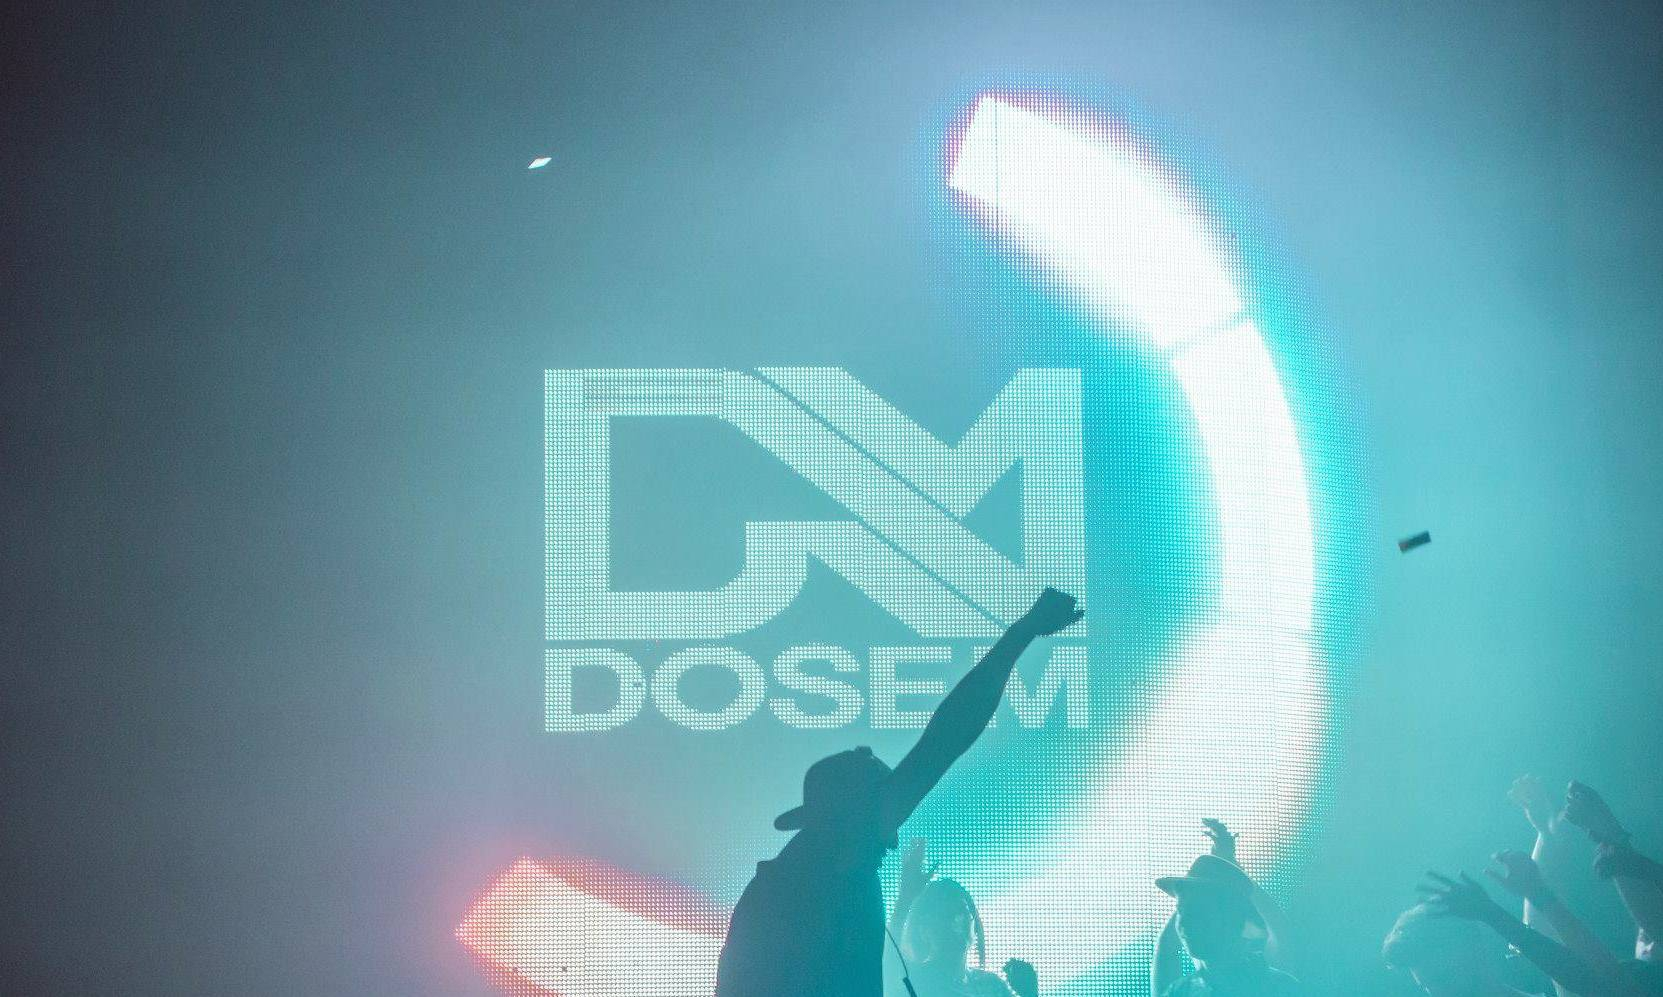 We catch up with Dosem, a leading light in Spanish house/techno